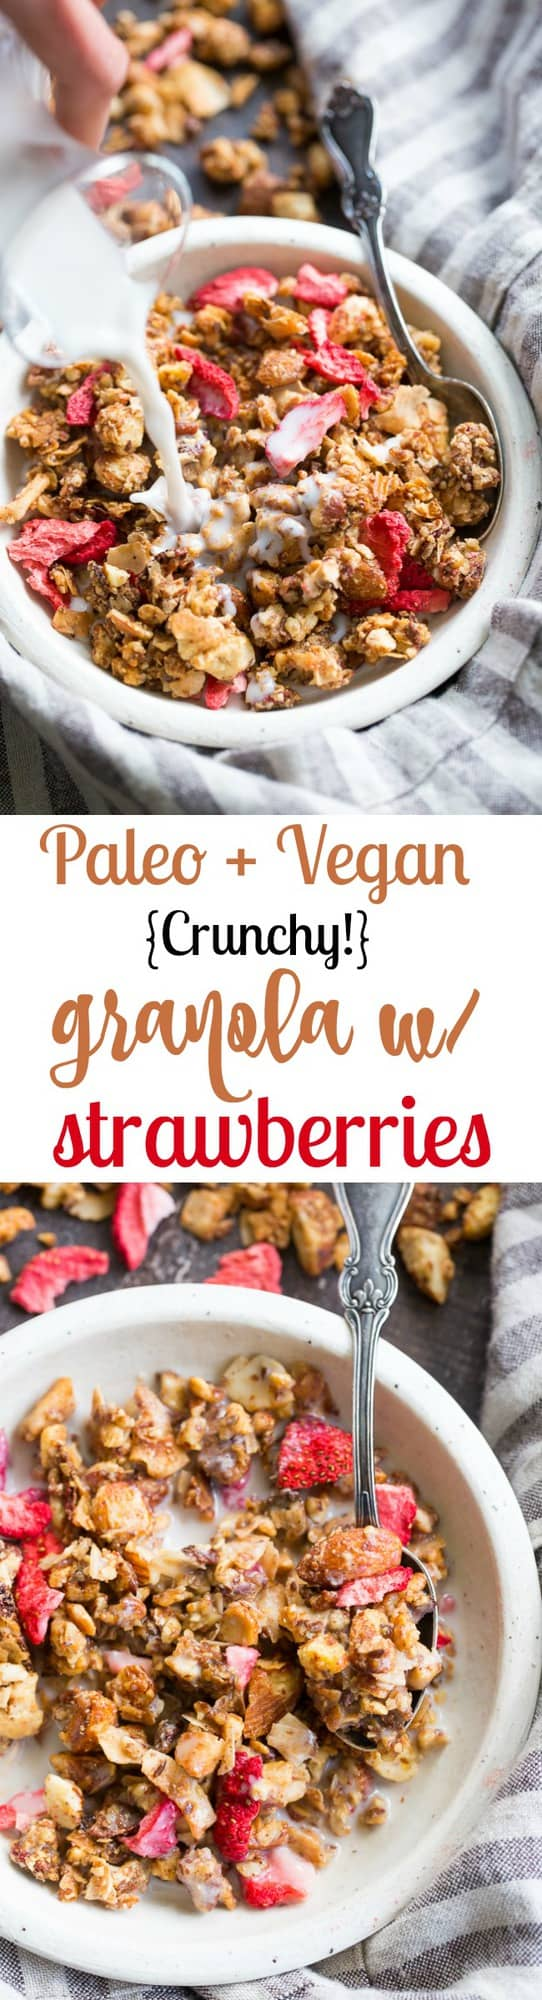 This crunchy grain free granola is packed with toasty sweet clusters and freeze dried strawberries for a breakfast or snack that you won't believe is actually good for you!  It's paleo, vegan, free of refined sugar and family approved!